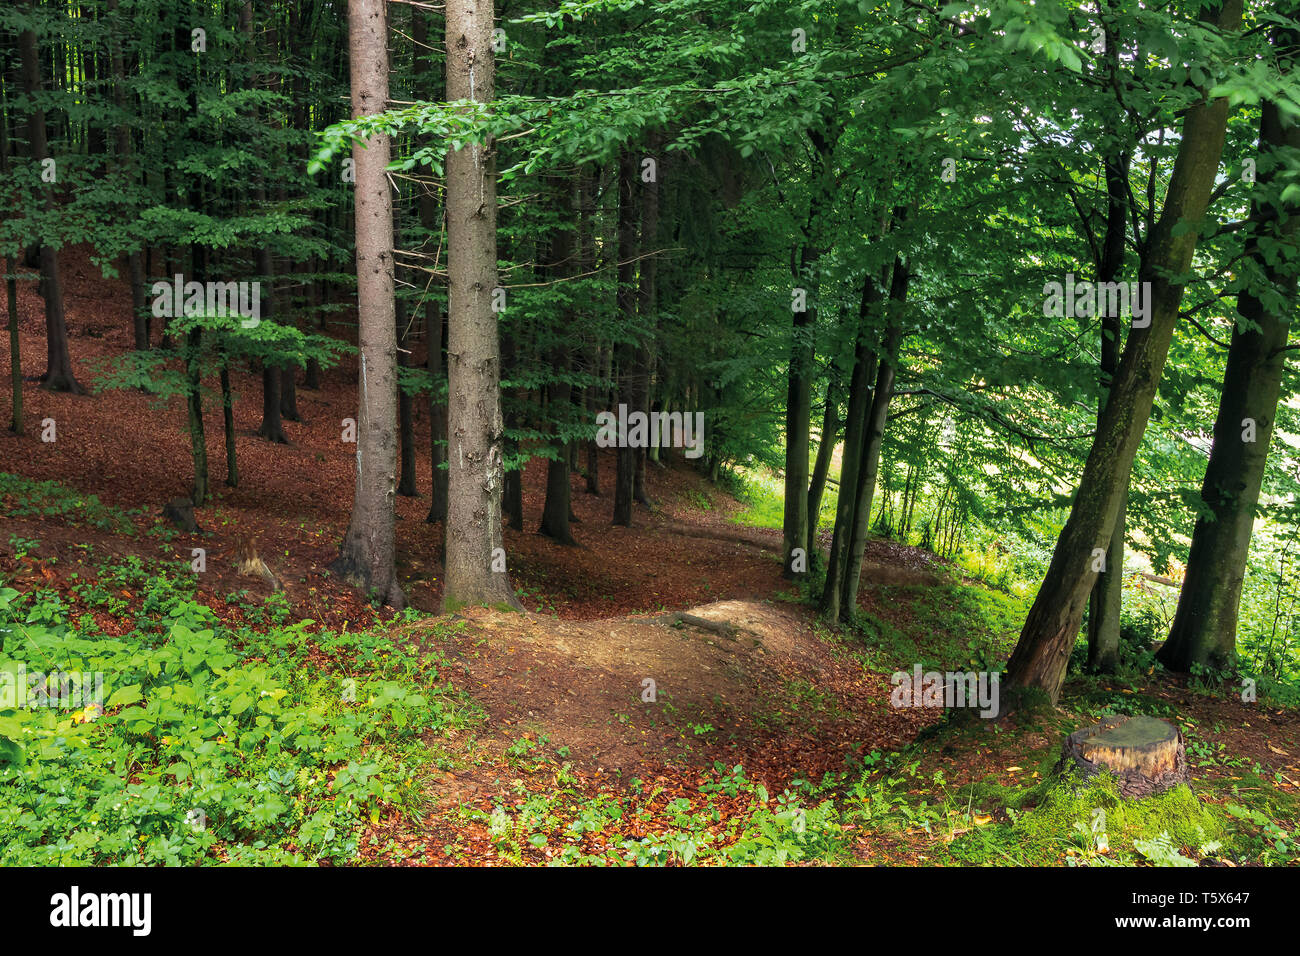 in the shade of a green forest. beautiful nature background. - Stock Image